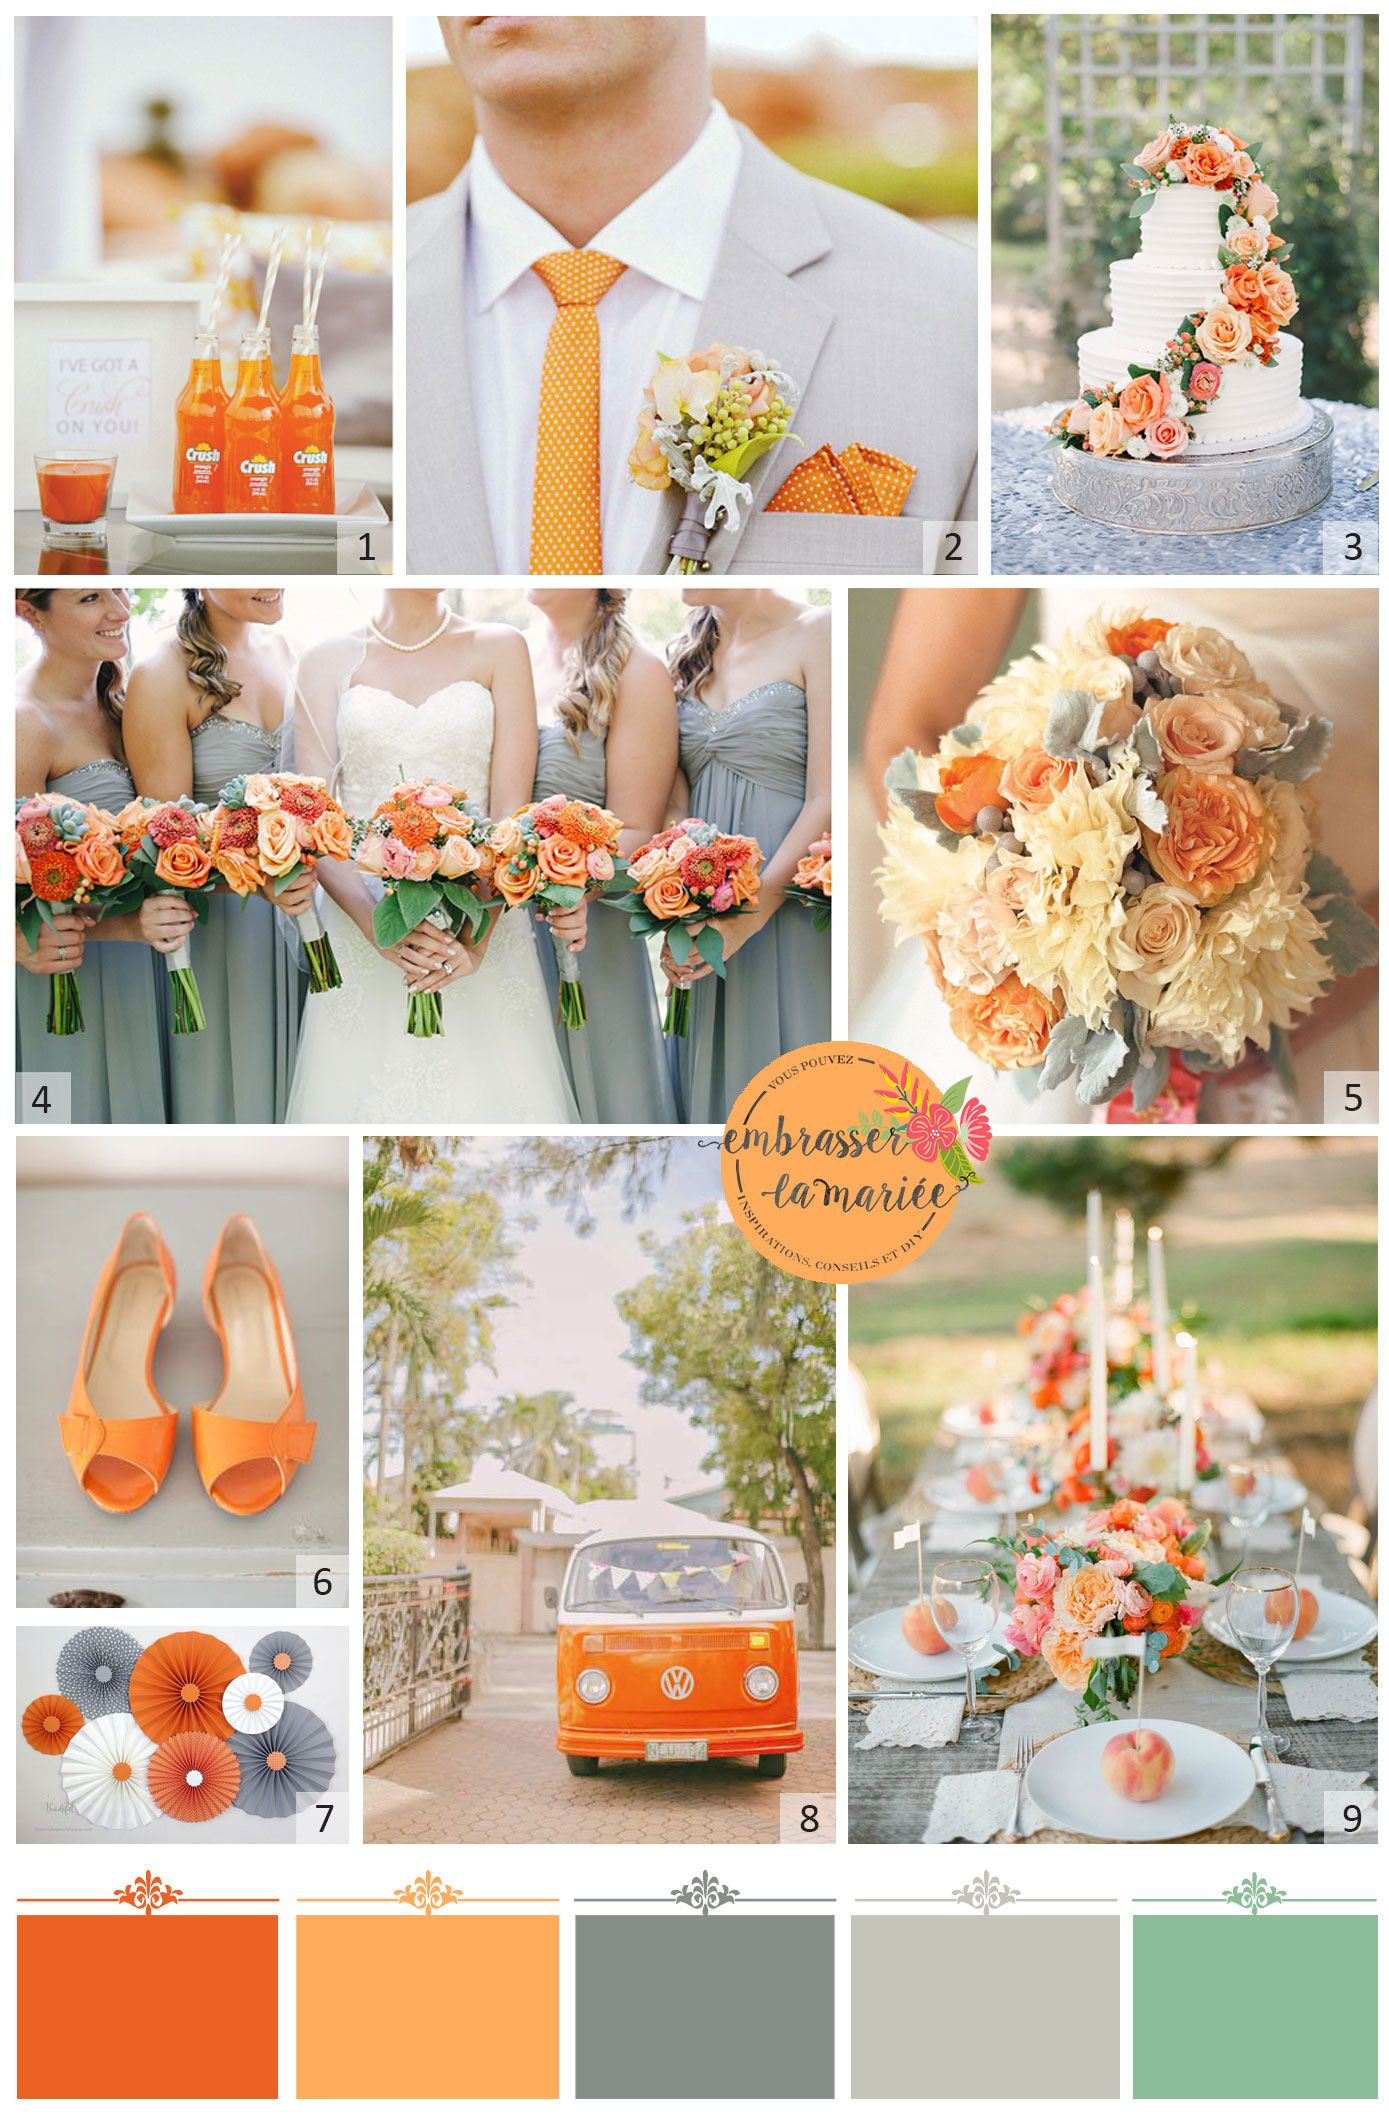 A Tangerine And Grey Wedding Yes Please Orange Is Beautiful Color Often Put Aside It Looks Combined With Love